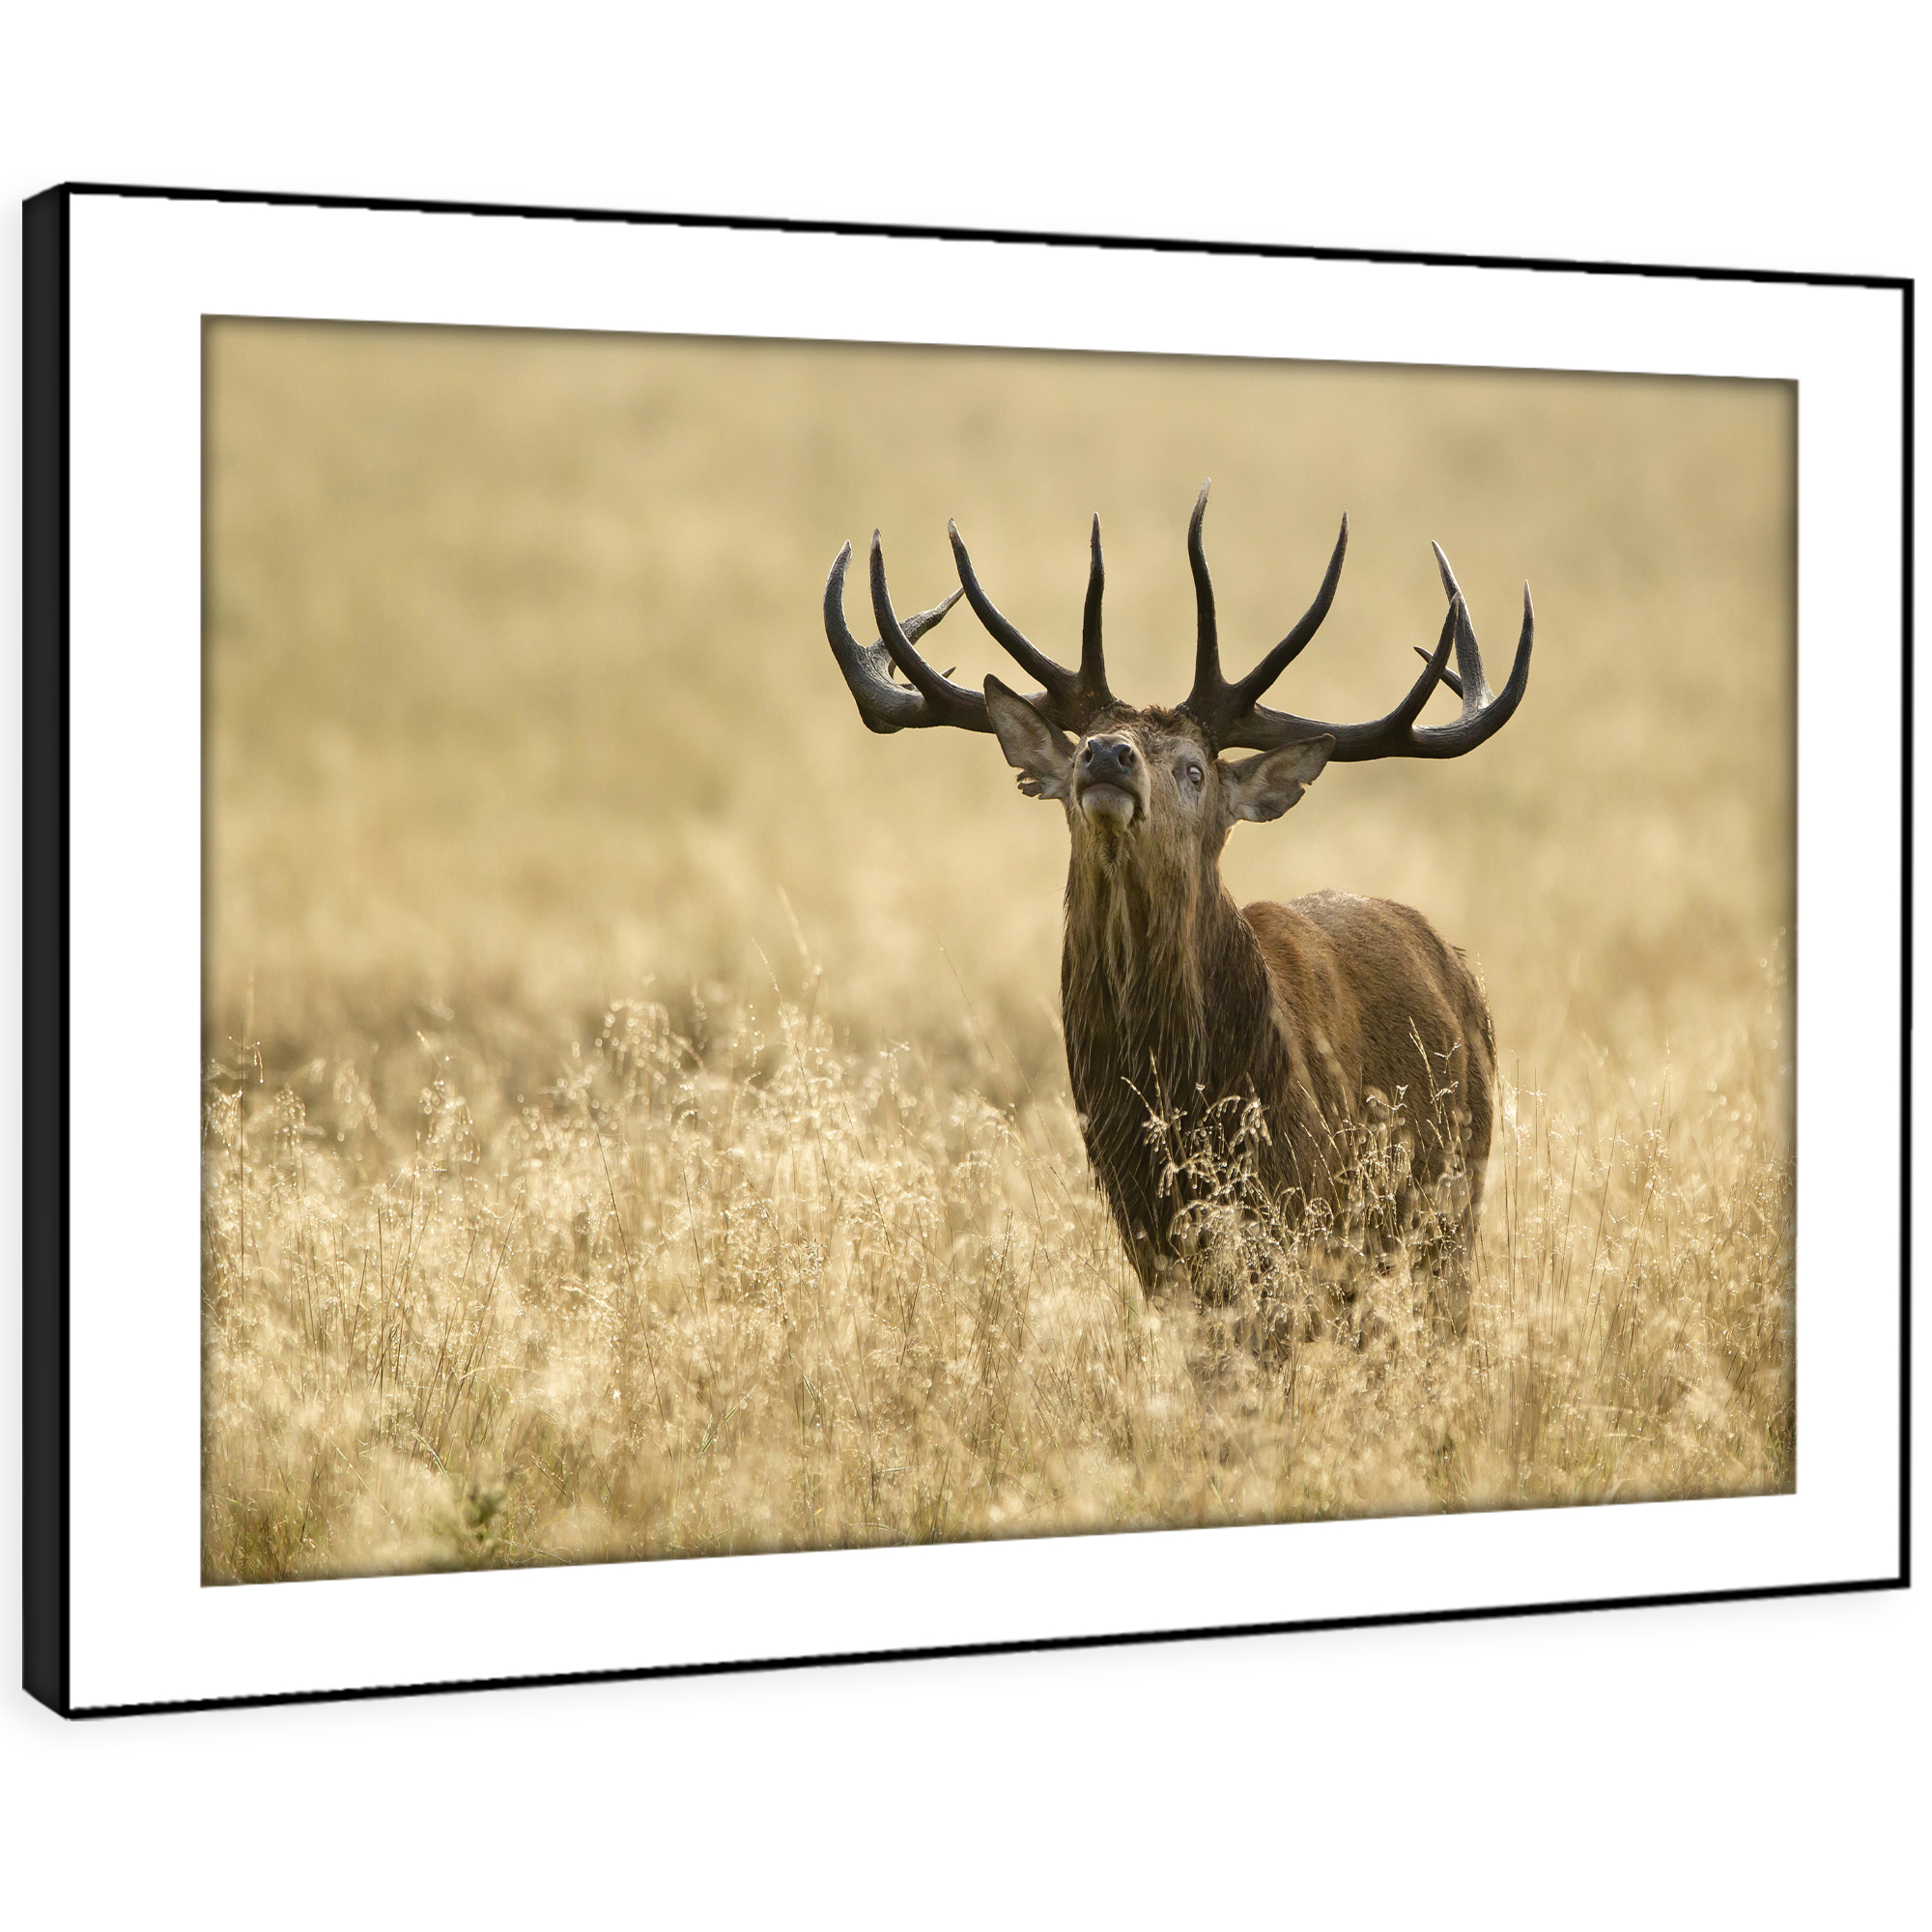 A636 braun Stag Gelb Grass Funky Animal Framed Wall Art Large Picture Prints